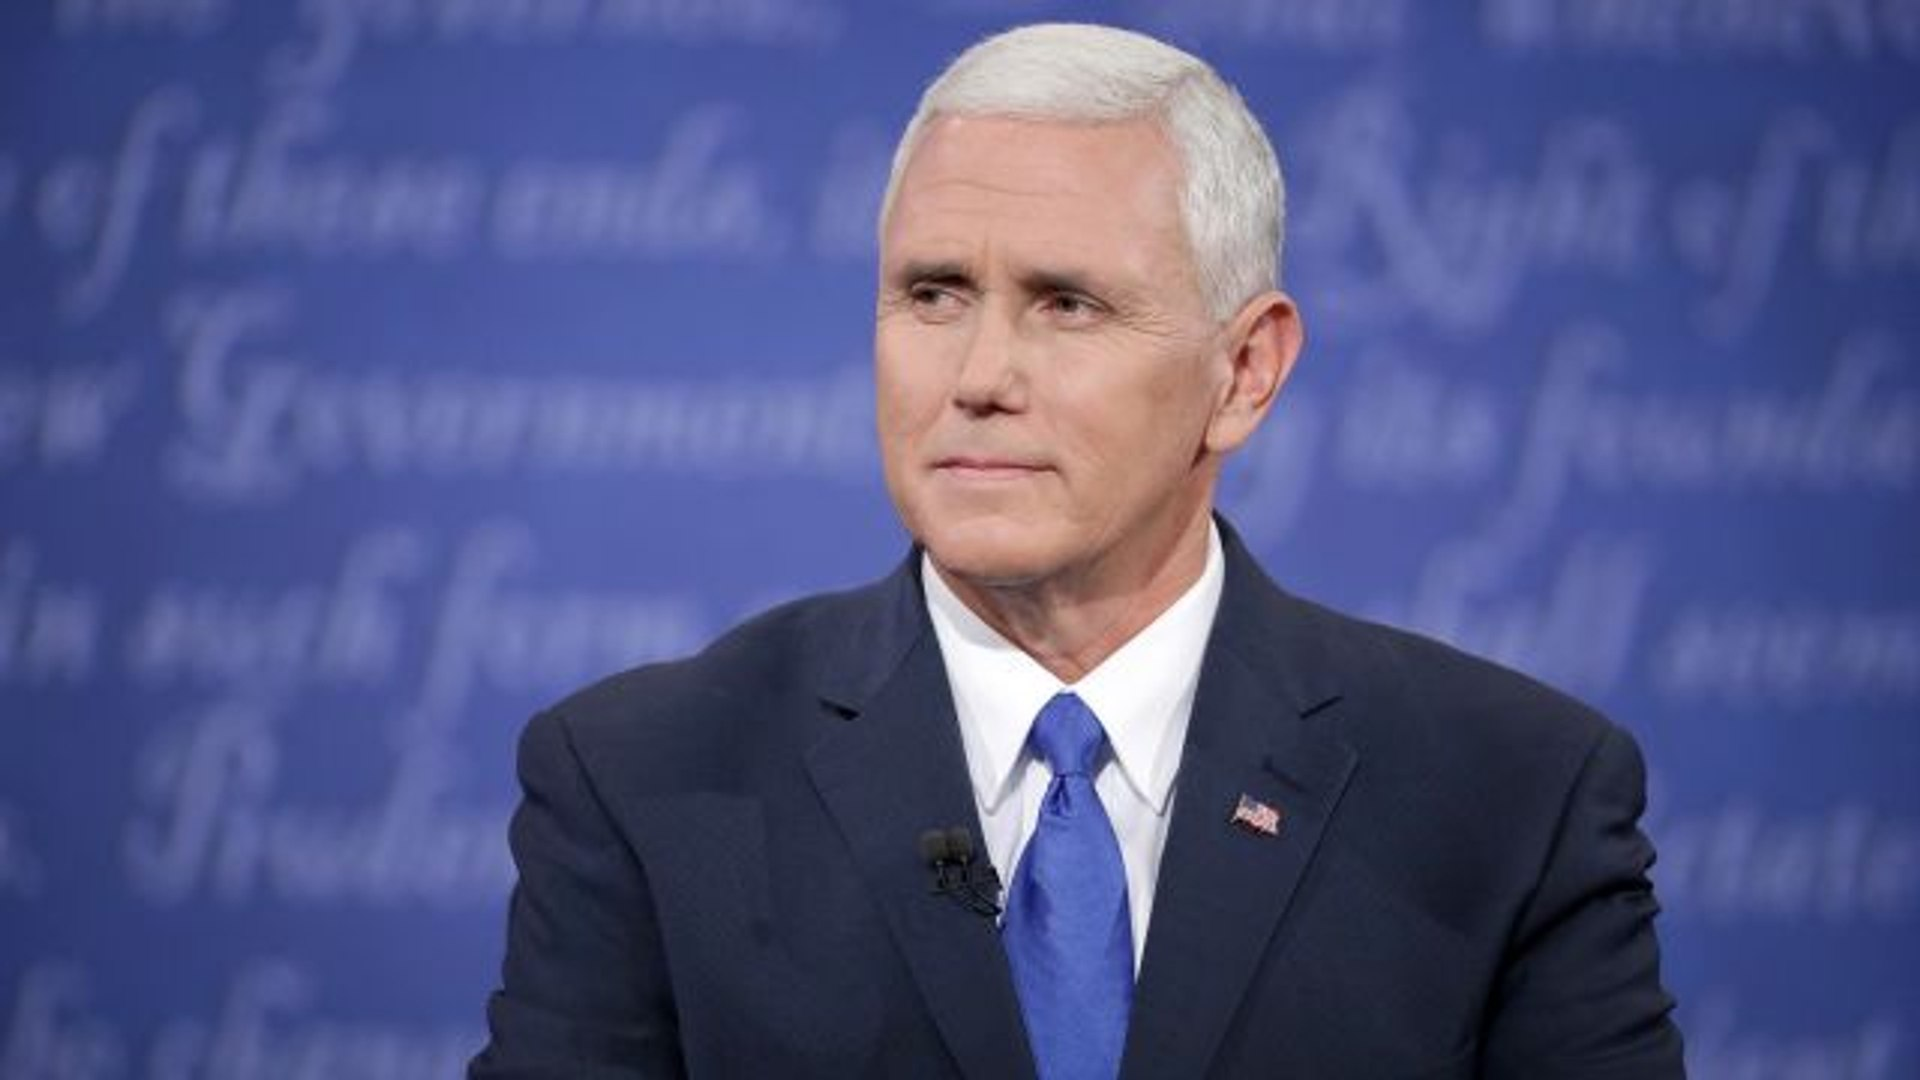 5 Things About Mike Pence That Won't Make America Great Again